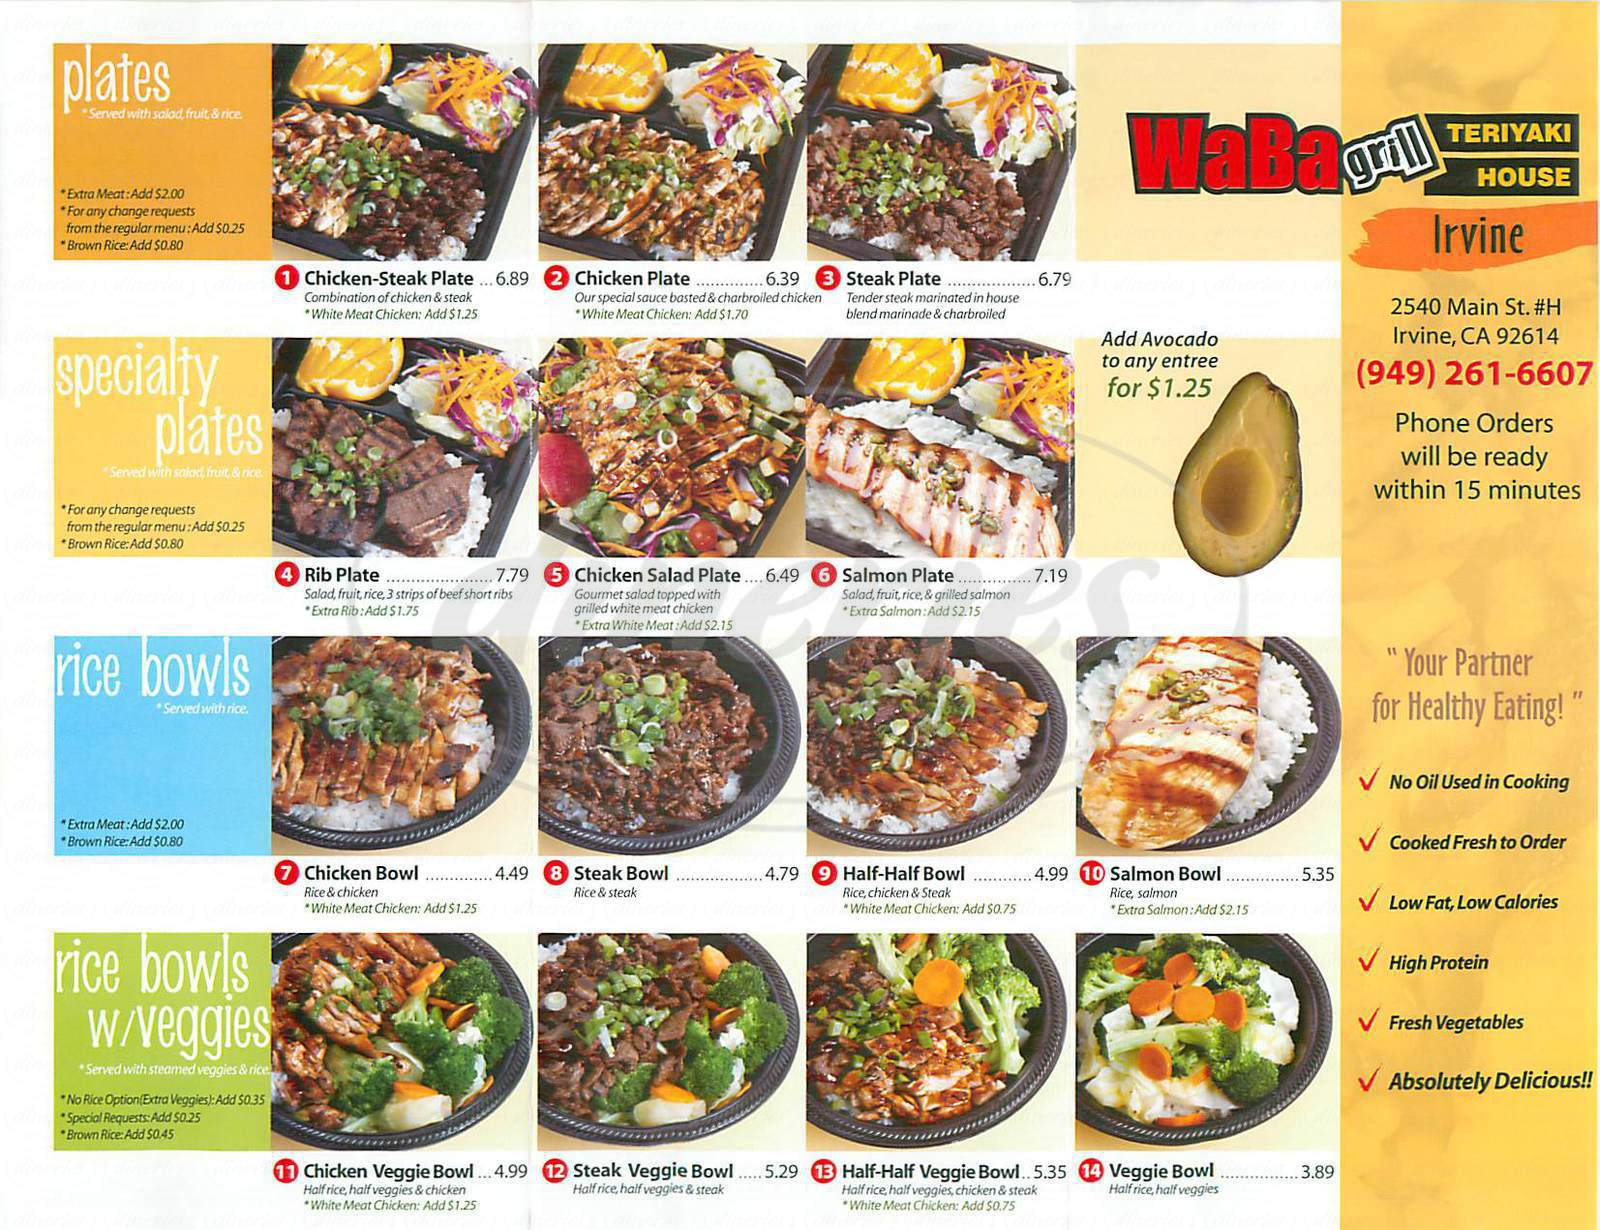 menu for WaBa Grill Teriyaki House